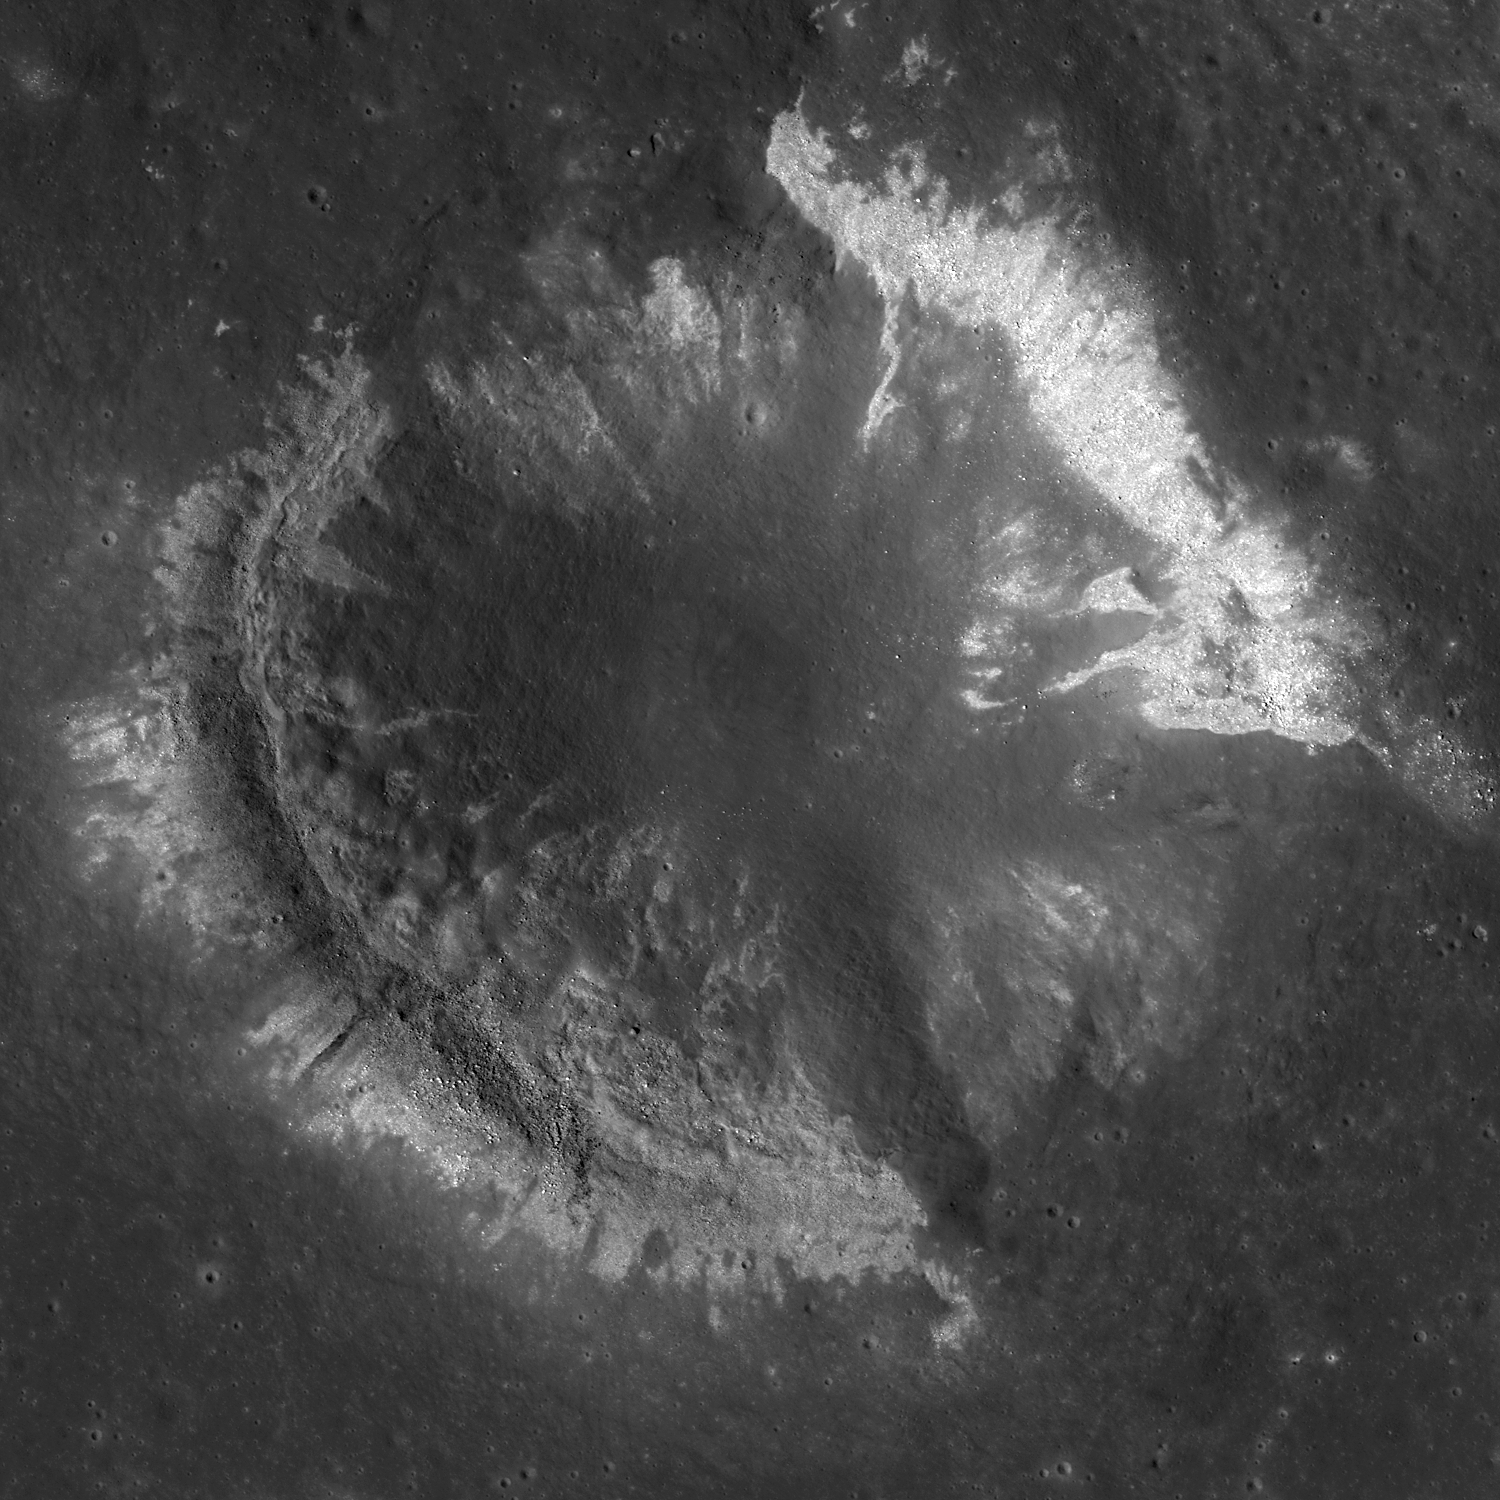 Wrinkle Ridge vs. Impact Crater